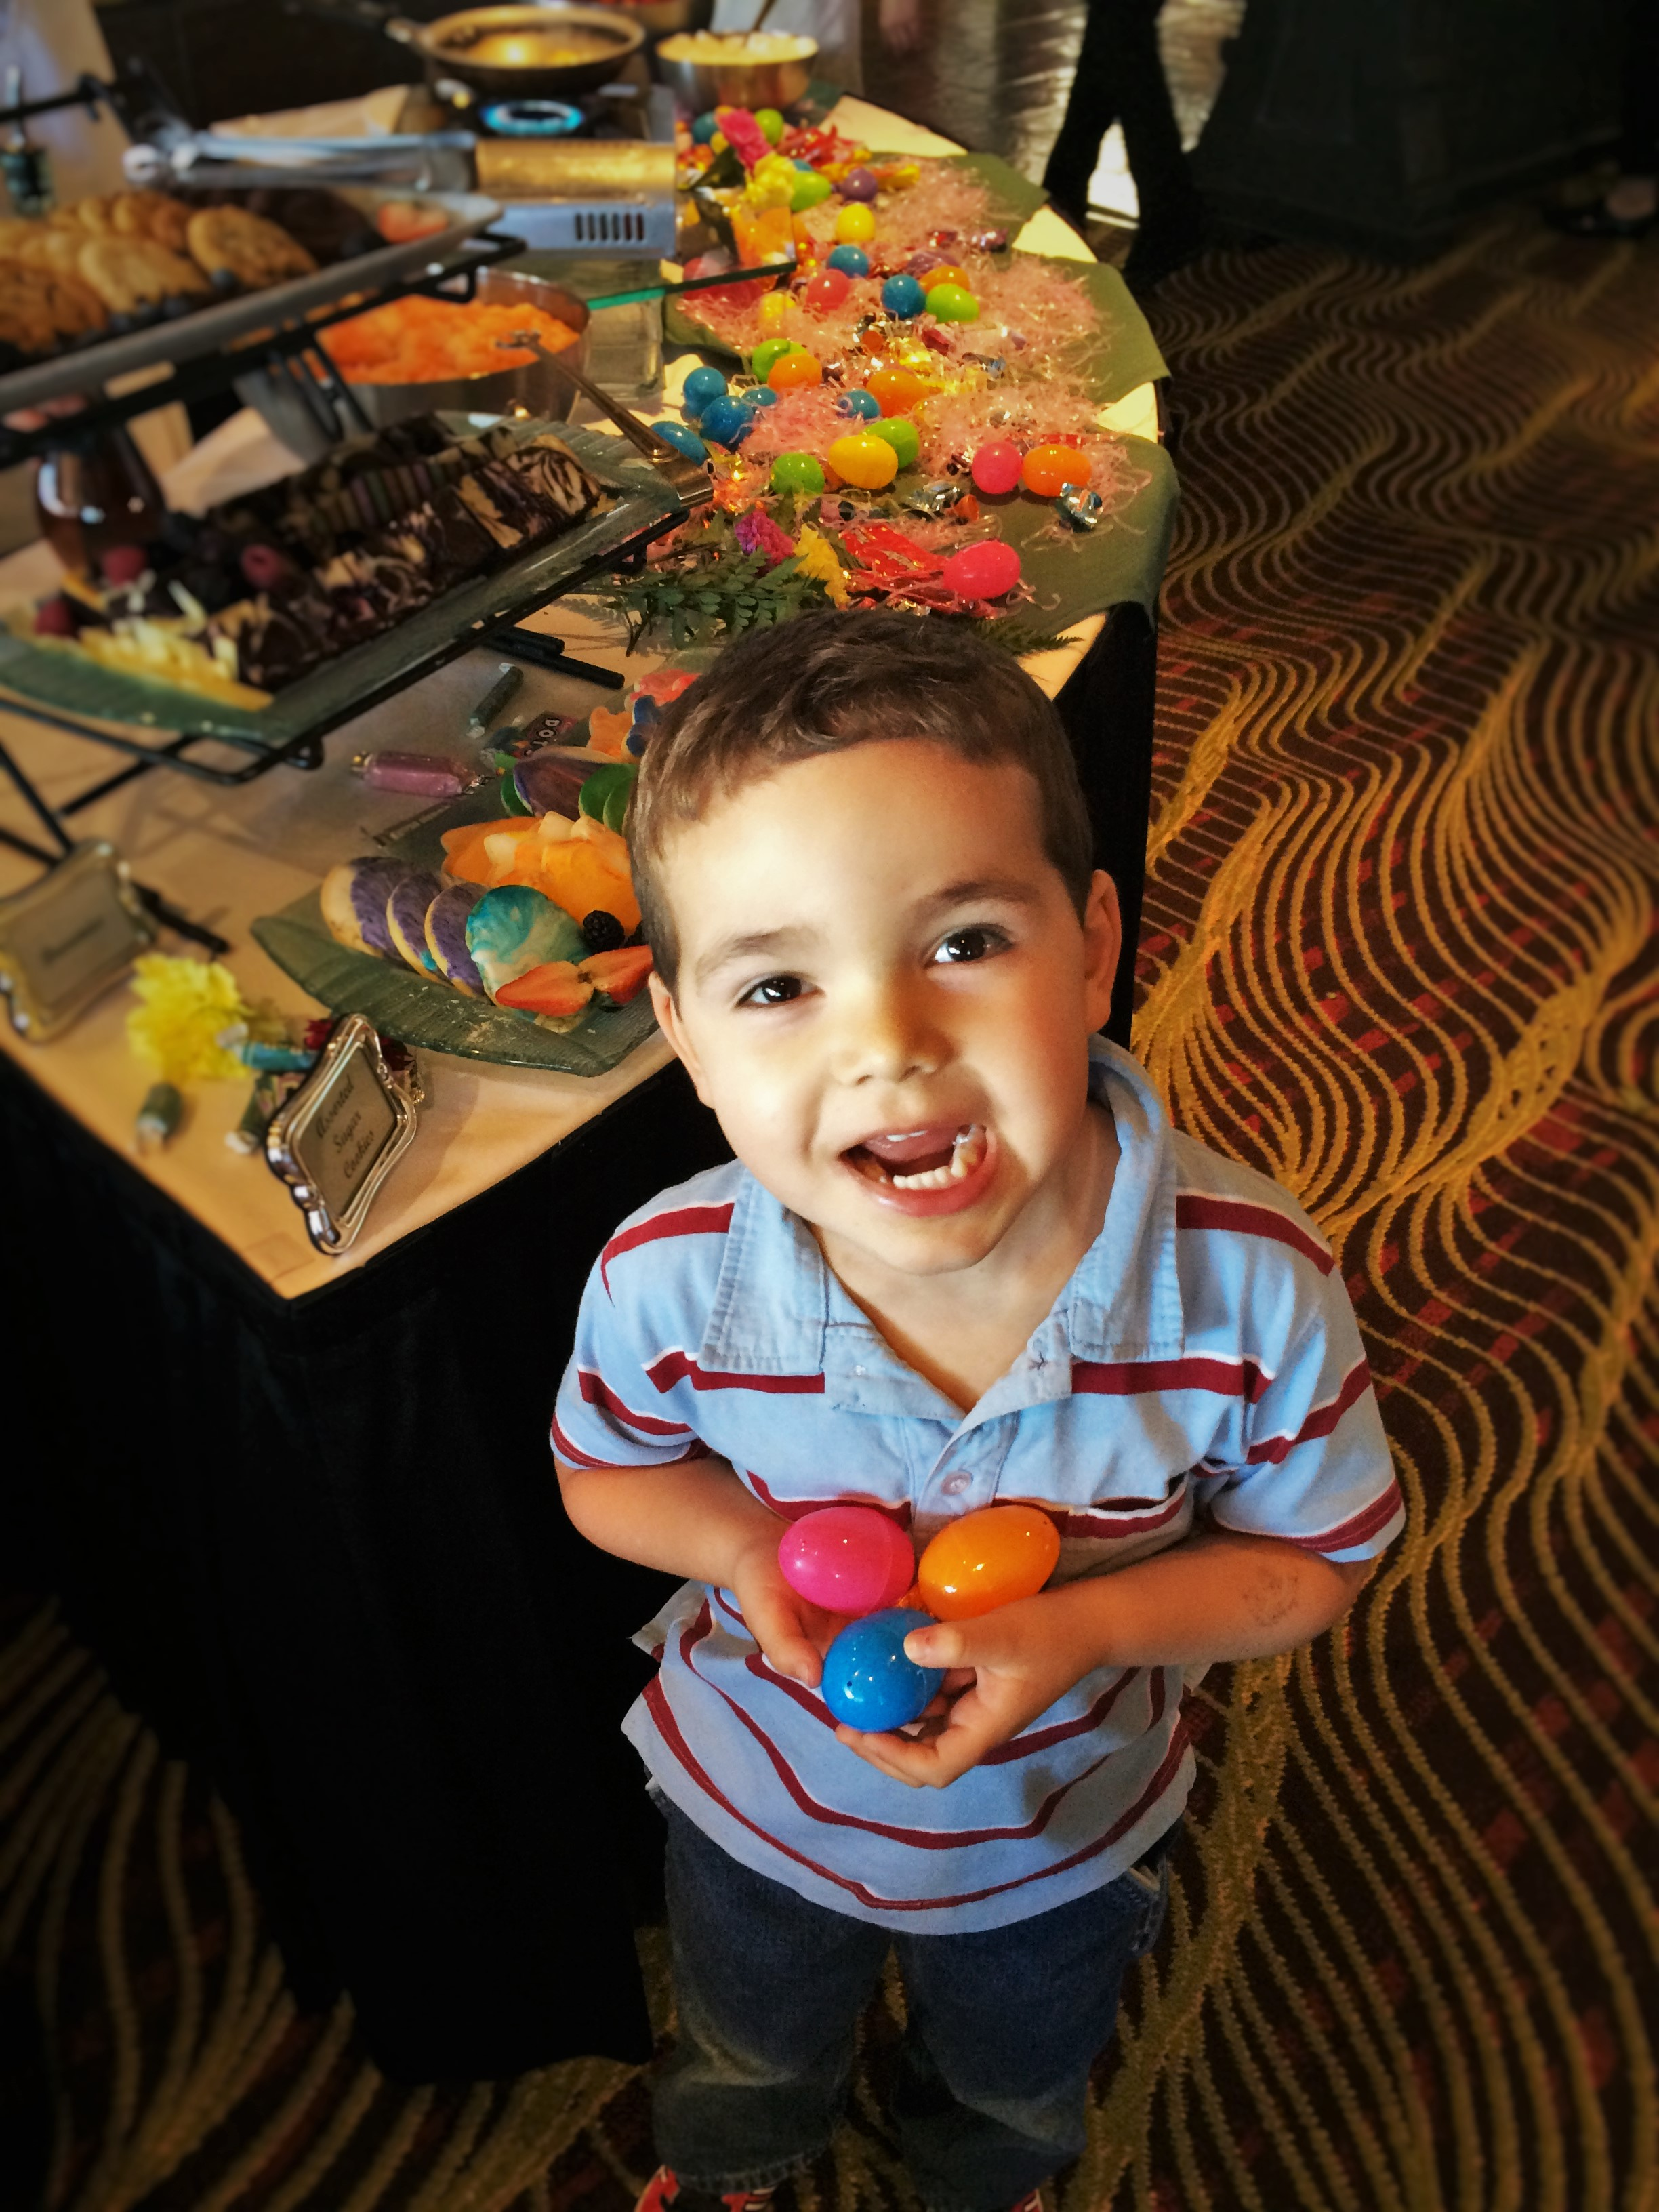 LittleMan with Easter eggs at brunch in Garden Terrace at Inverness Hotel Denver Colorado 1